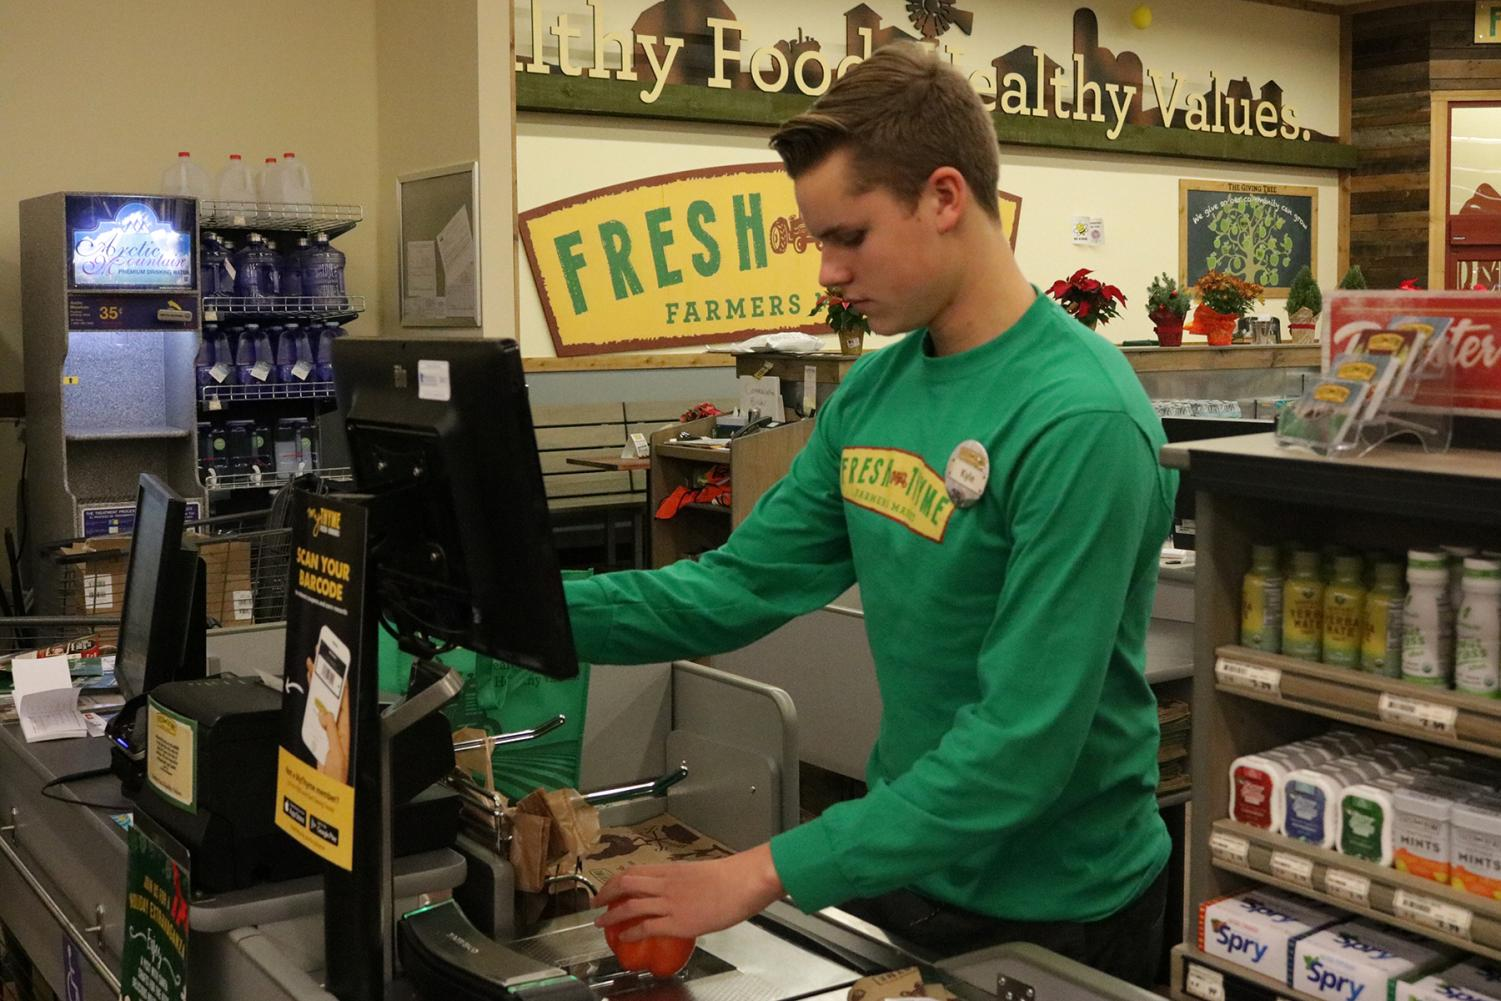 Fresh Thyme worker and high school student Kyle Hedblom working his shift after school on Dec. 4. Fresh Thyme Farmers Market currently employs multiple students, including Hedbolm.